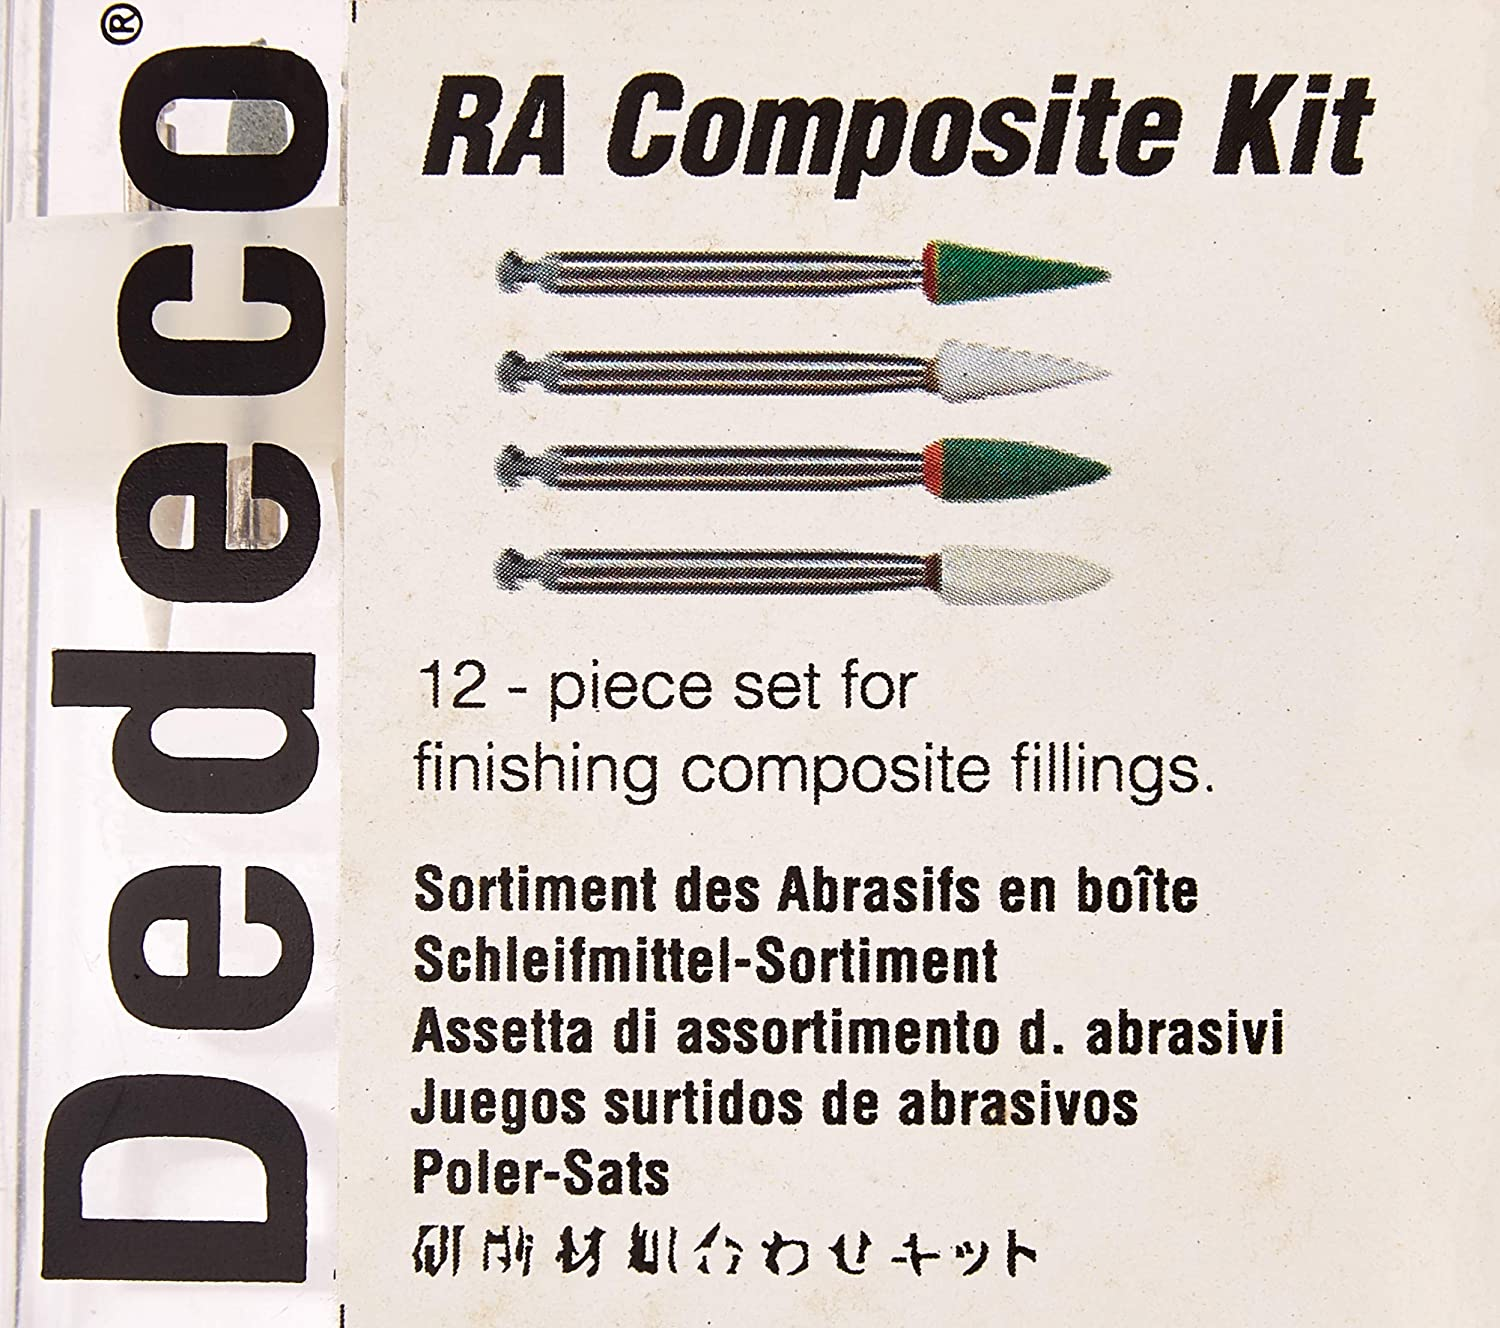 Pack of 12 Dedeco 1053 RA Composite Finishing